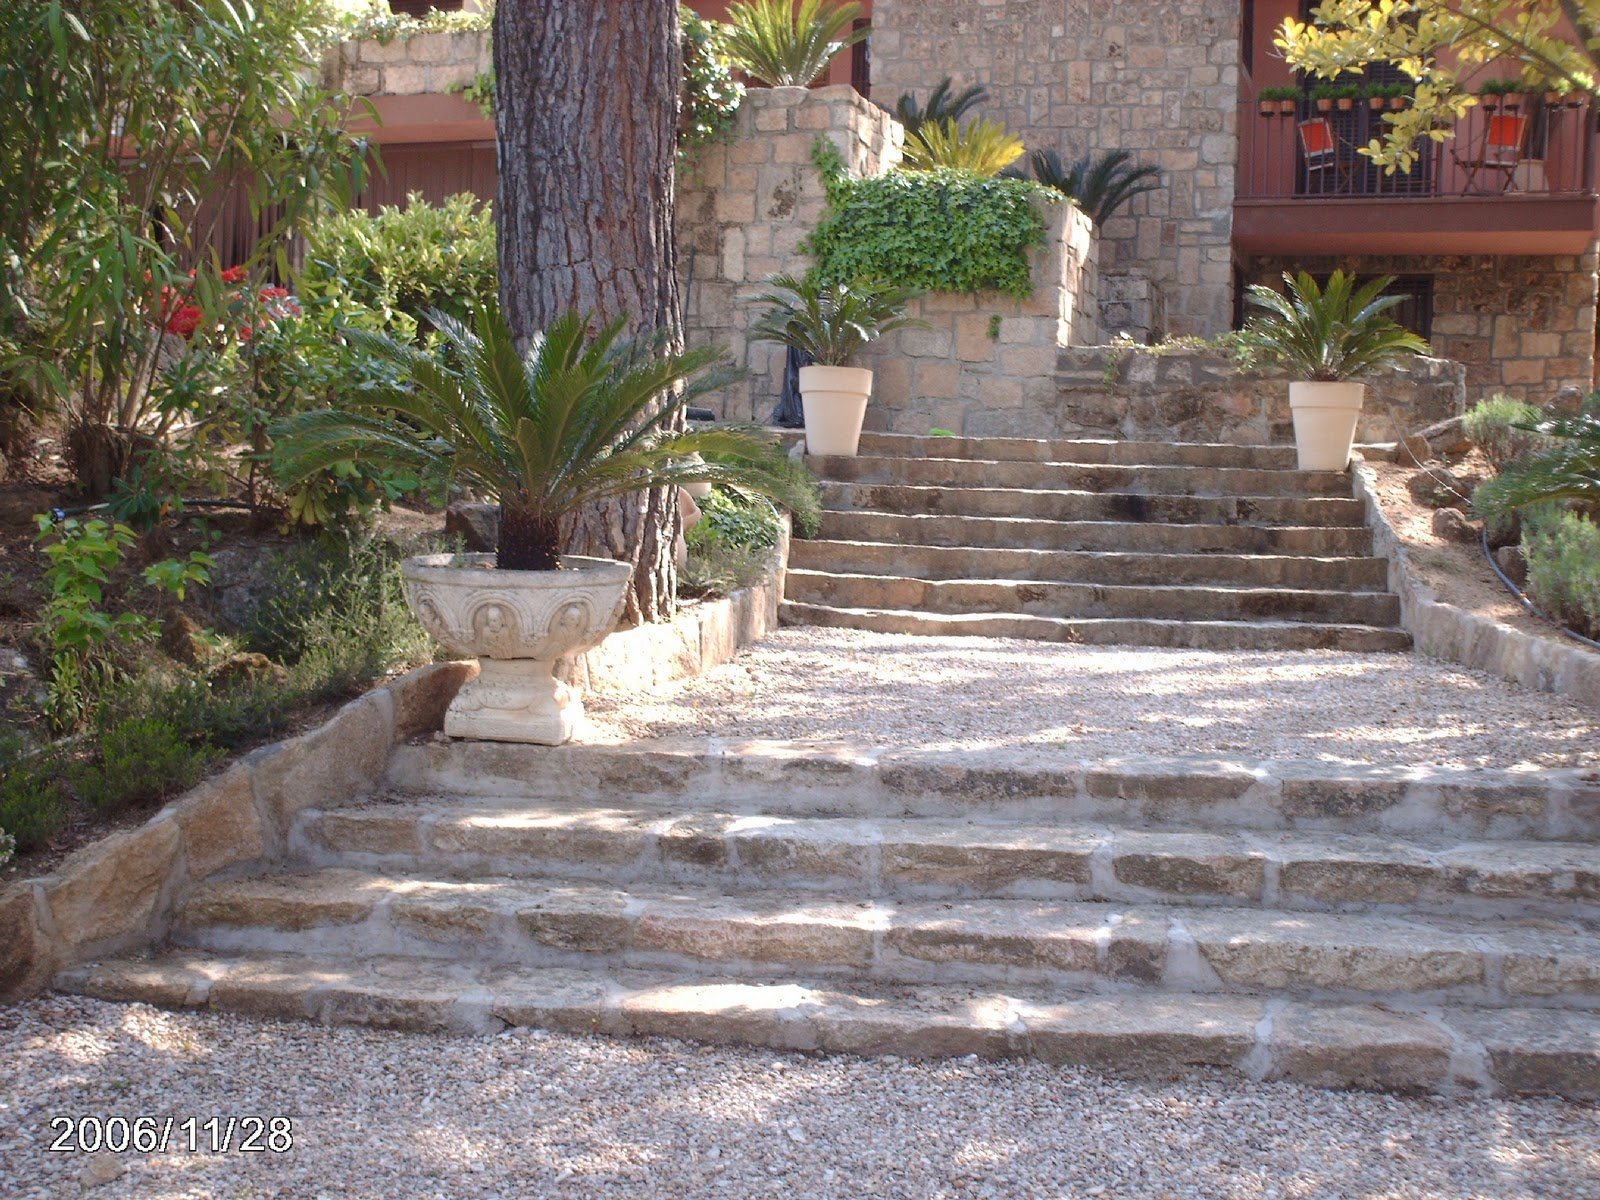 Lujo piedra musgo cresta ideas de decoraci n de for Escaleras yuste